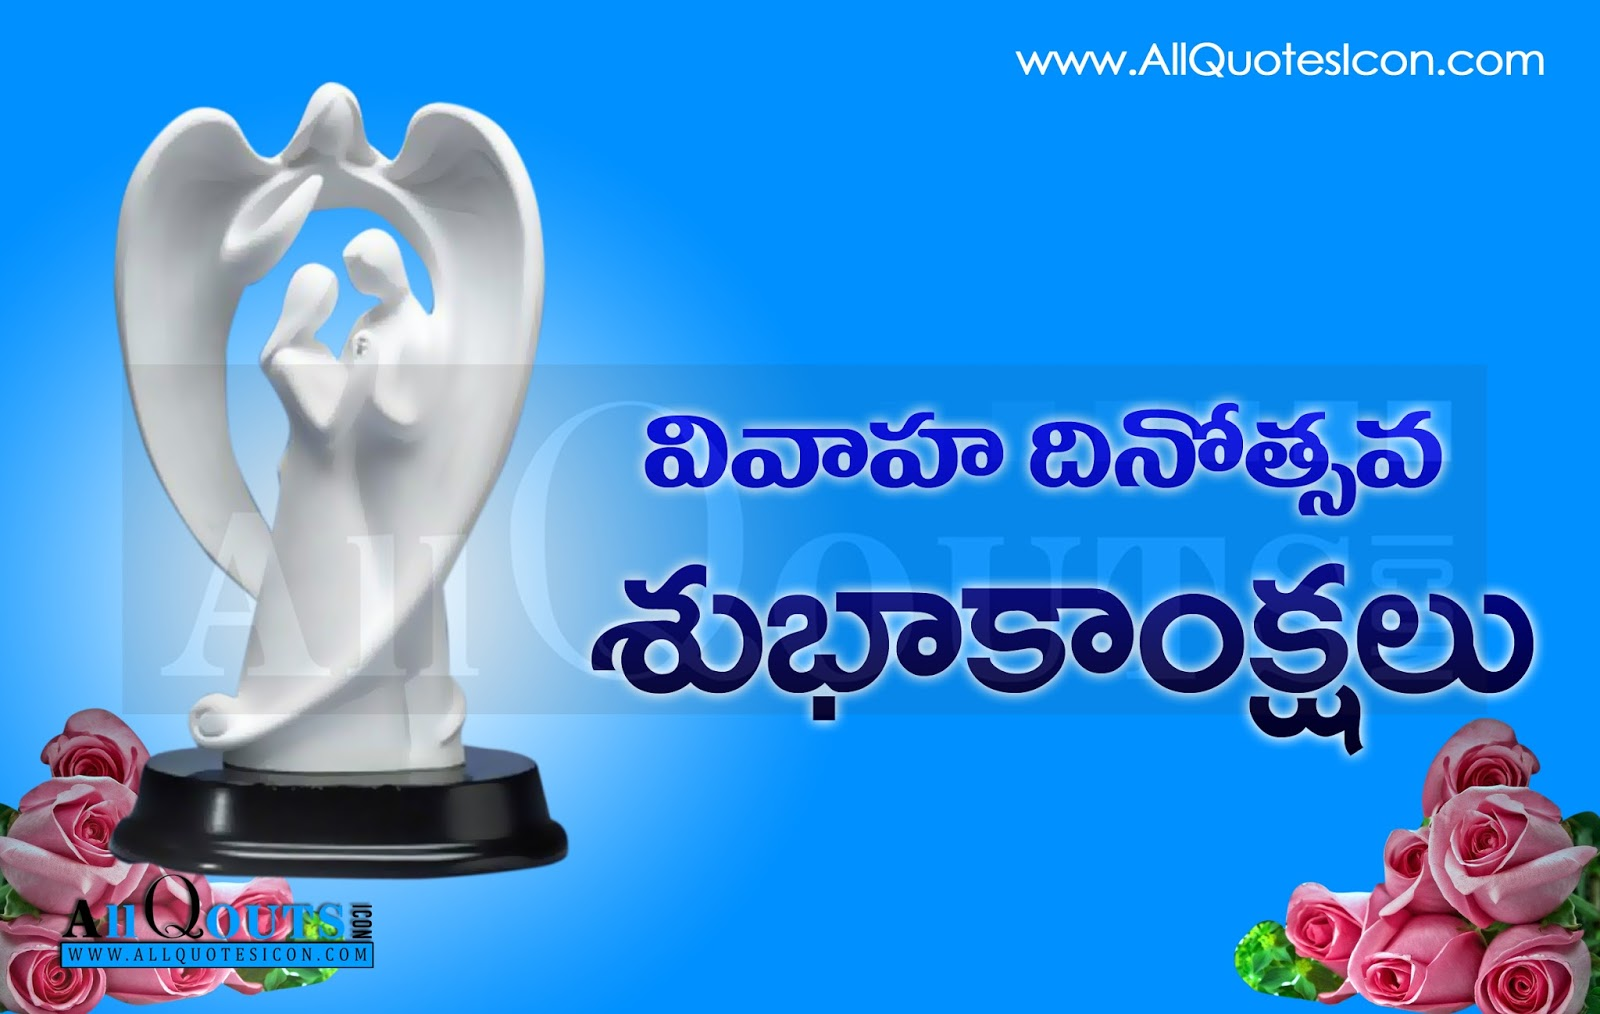 Happy Married Life Wishes Images In Telugu Labzada Wallpaper